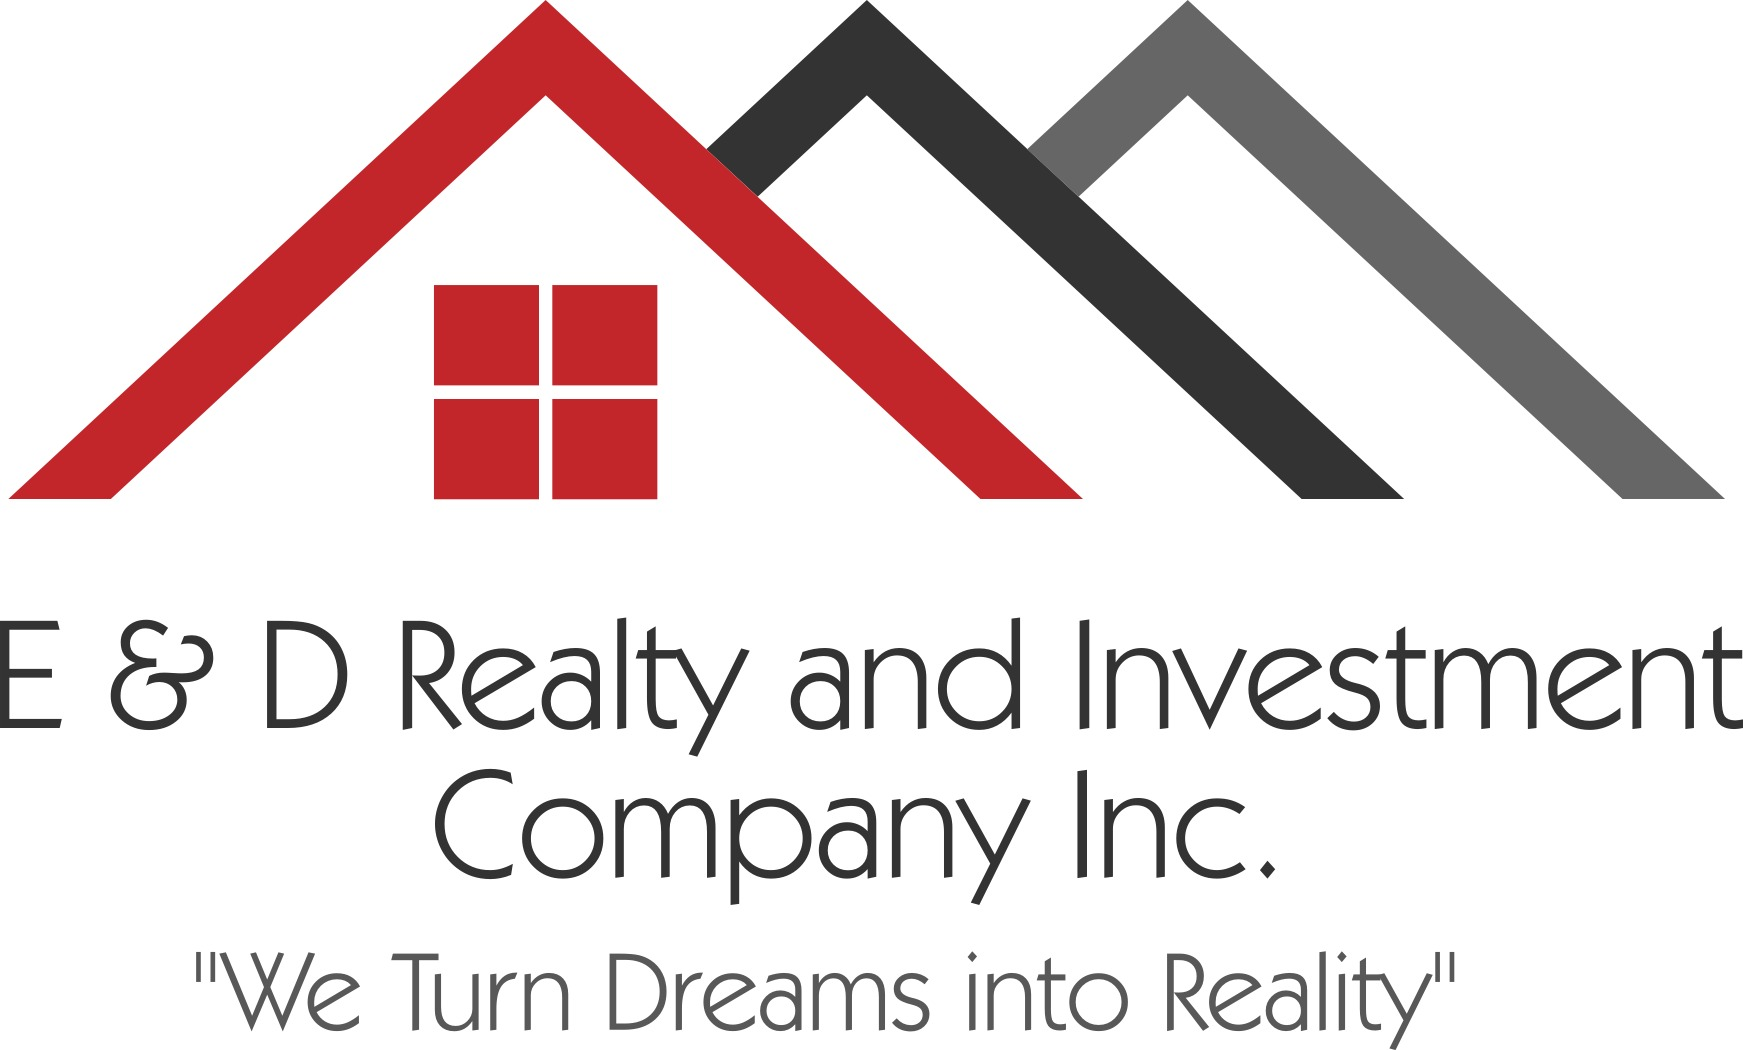 ED REALTY INVESTMENT COMPANY INC.